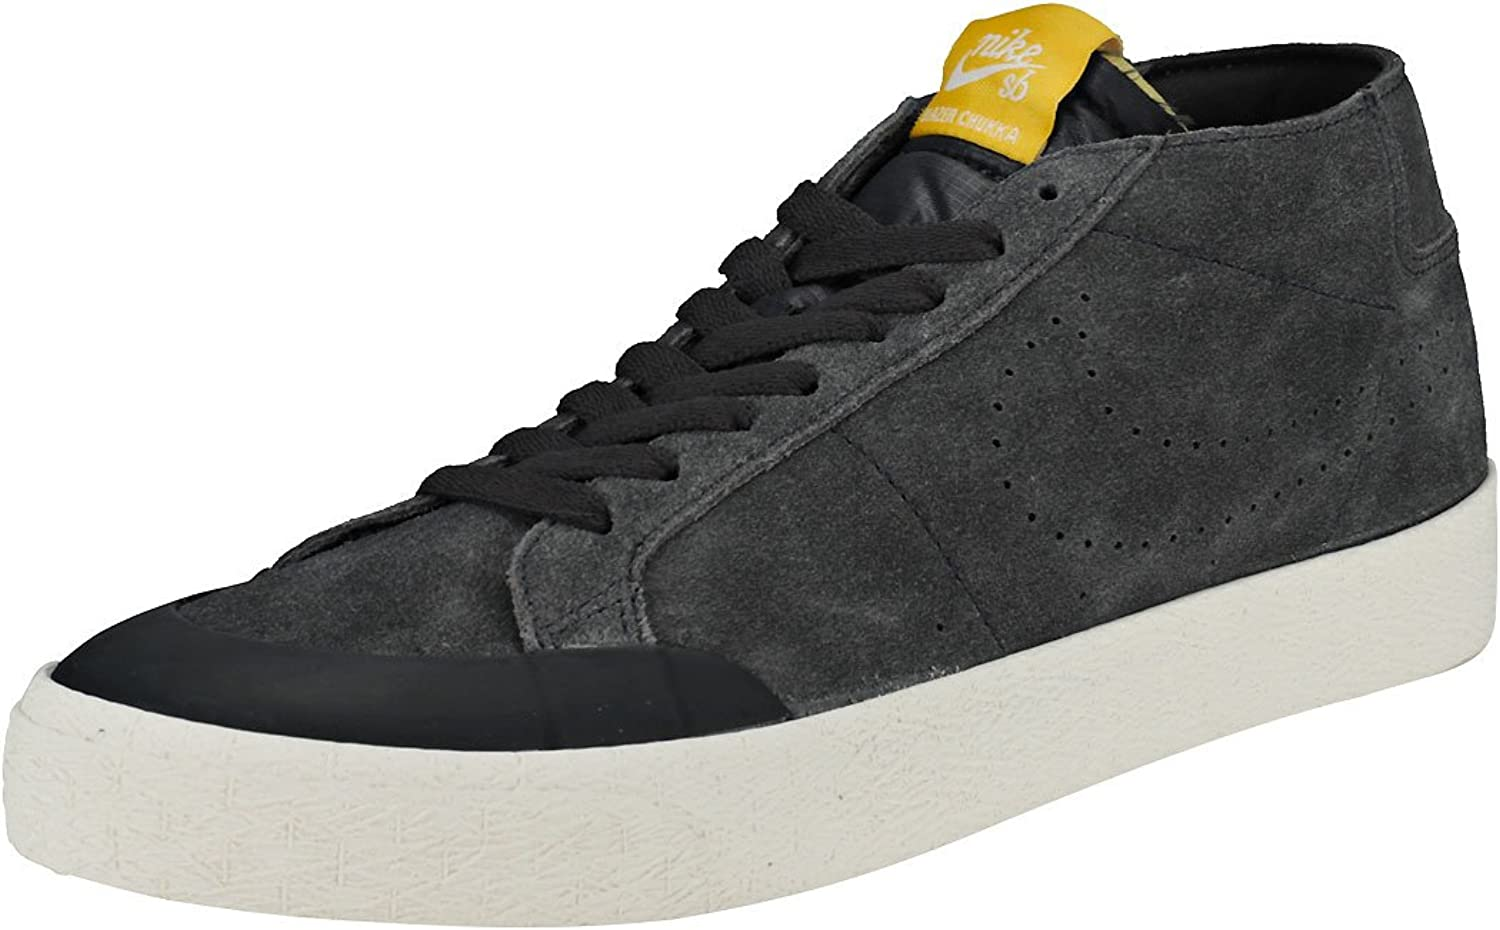 Nike SB Zoom Blazer Chukka XT Men's shoes - AH3366